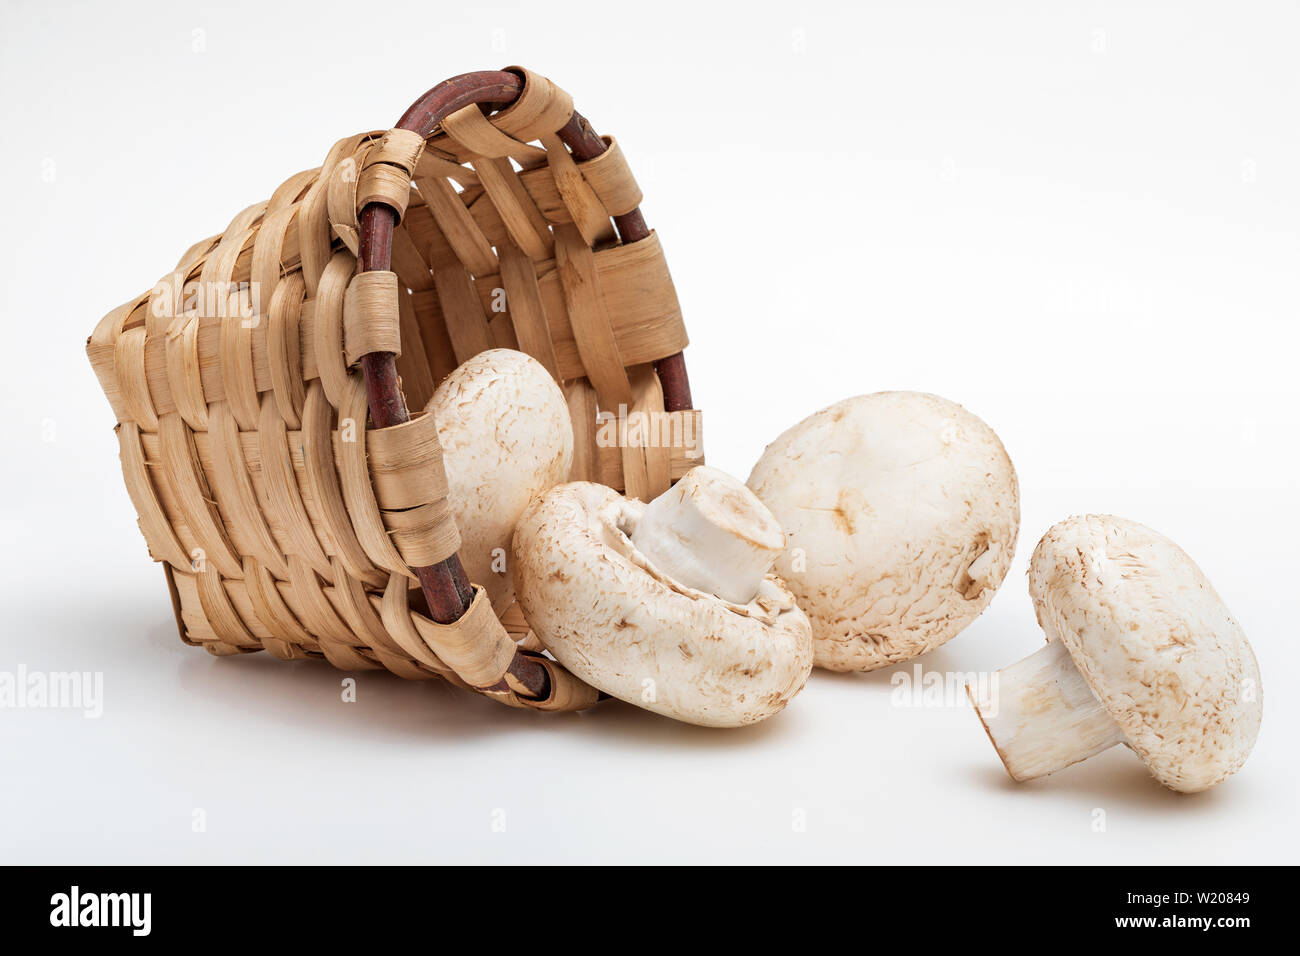 Wicker basket with mushrooms (champignon, cut feet, Agaricus Bisporus) raw (uncooked). Foreground. Isolated on white background. - Stock Image